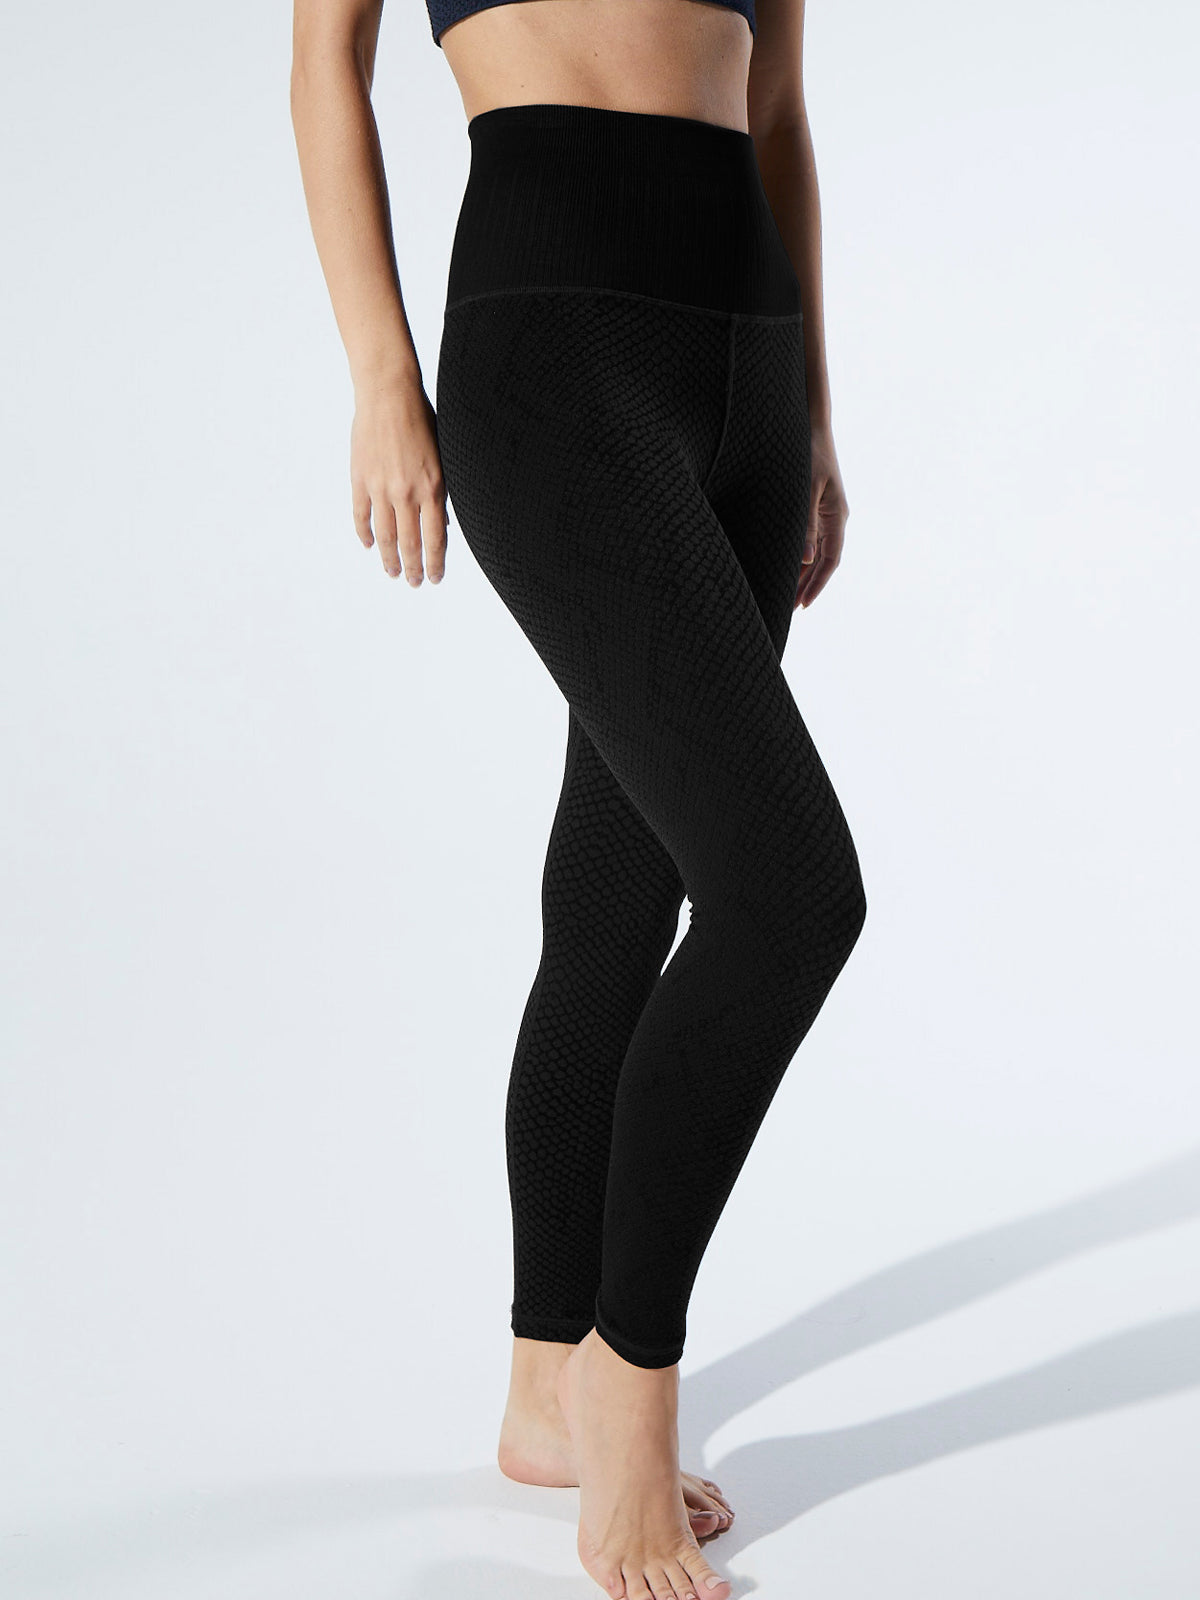 Snake Fire Legging in Black